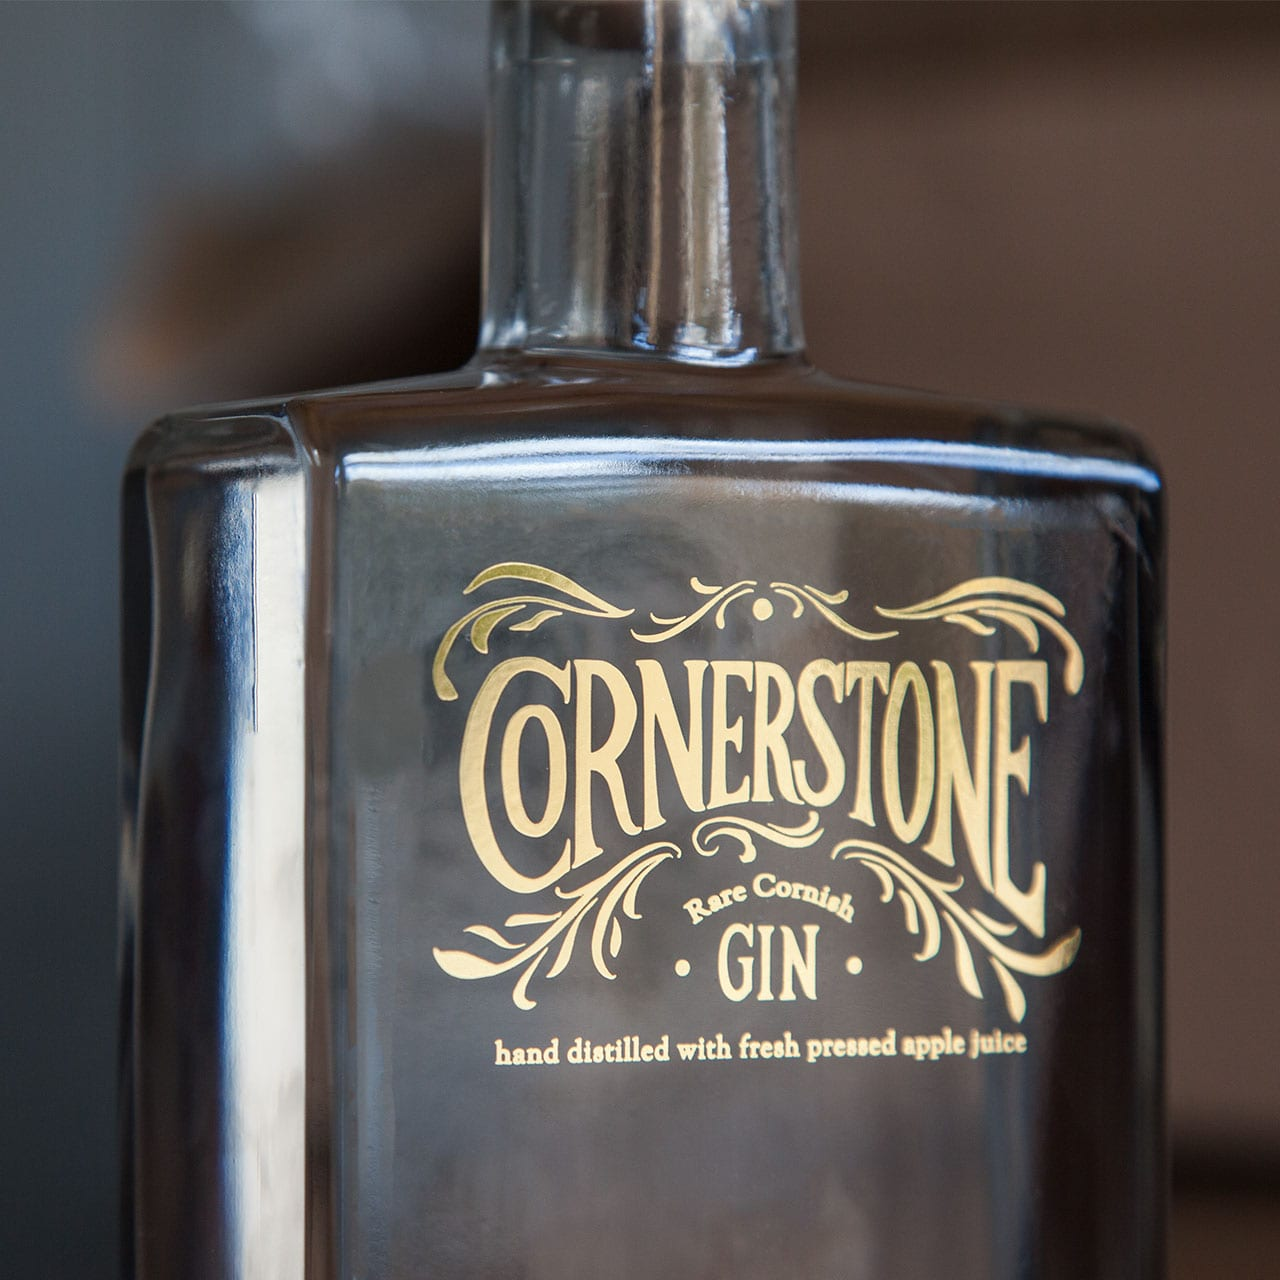 A close-up photograph of the Cornerstone rare Cornish gin bottle gold label design and branding